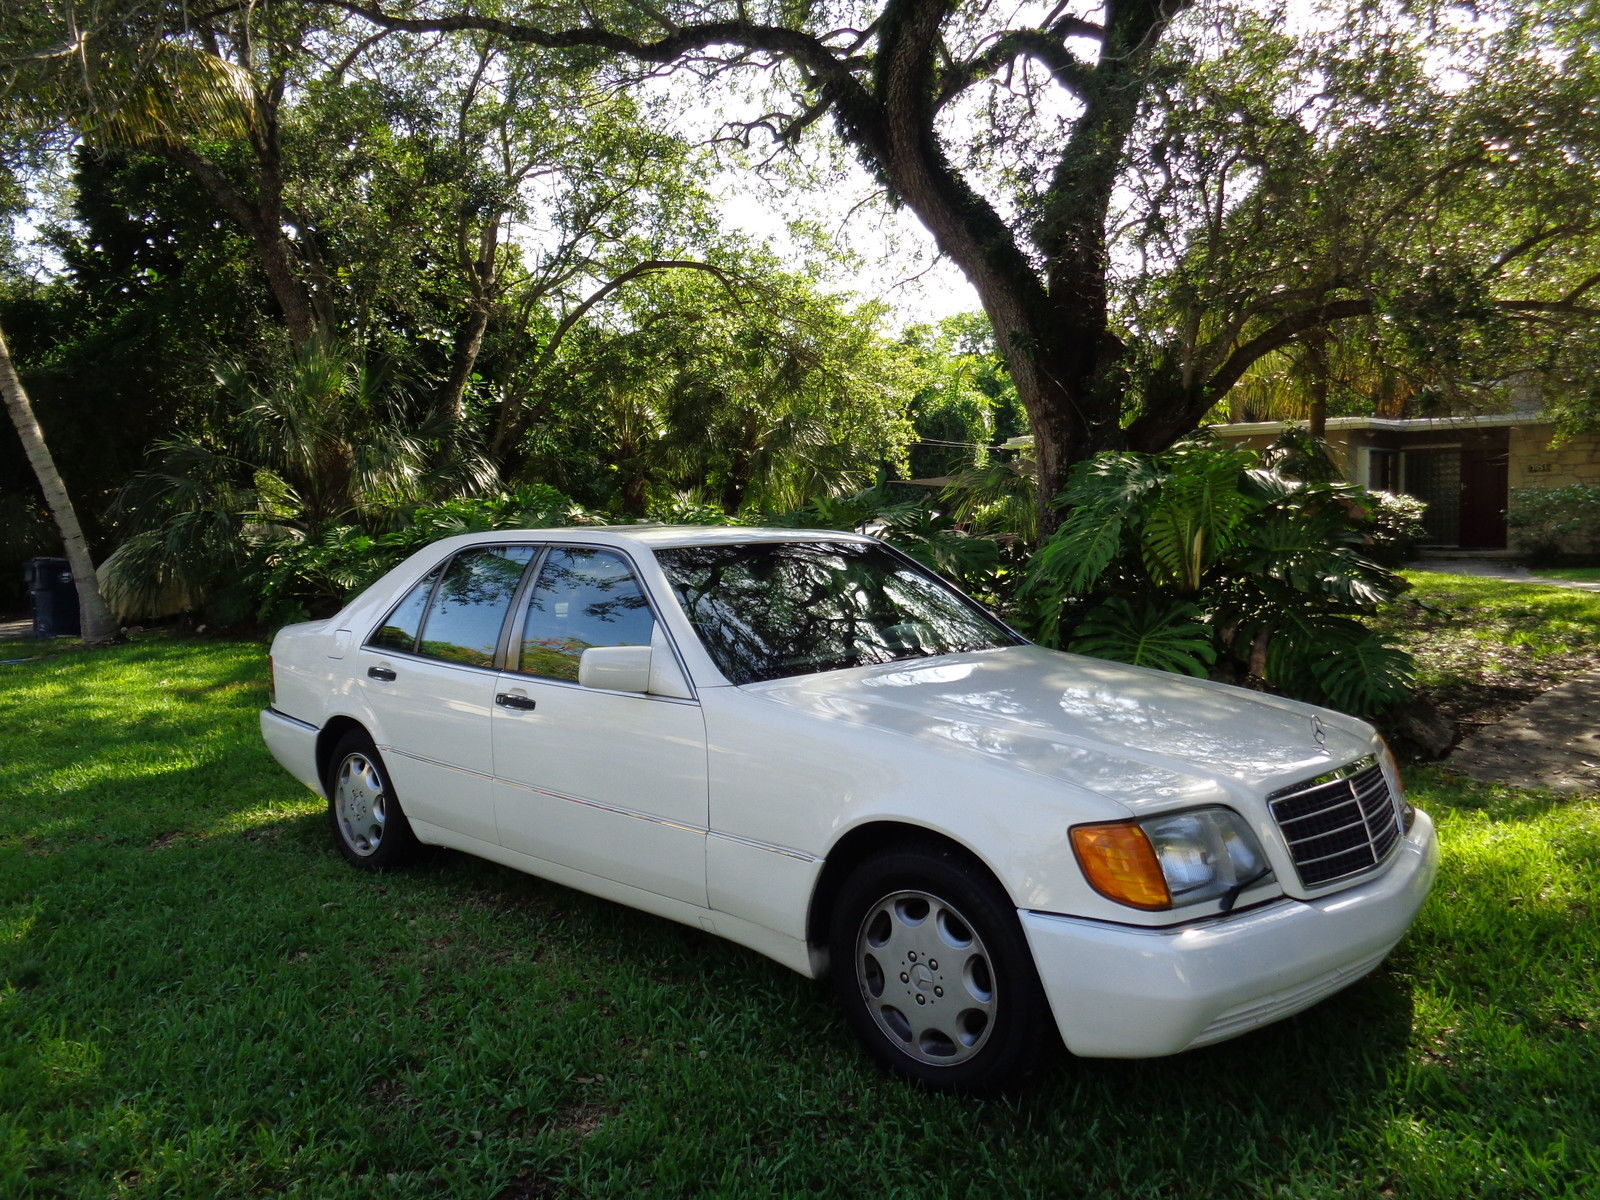 Rare 93 mercedes benz 300sd s350 turbo diesel ice cold air for Diesel mercedes benz